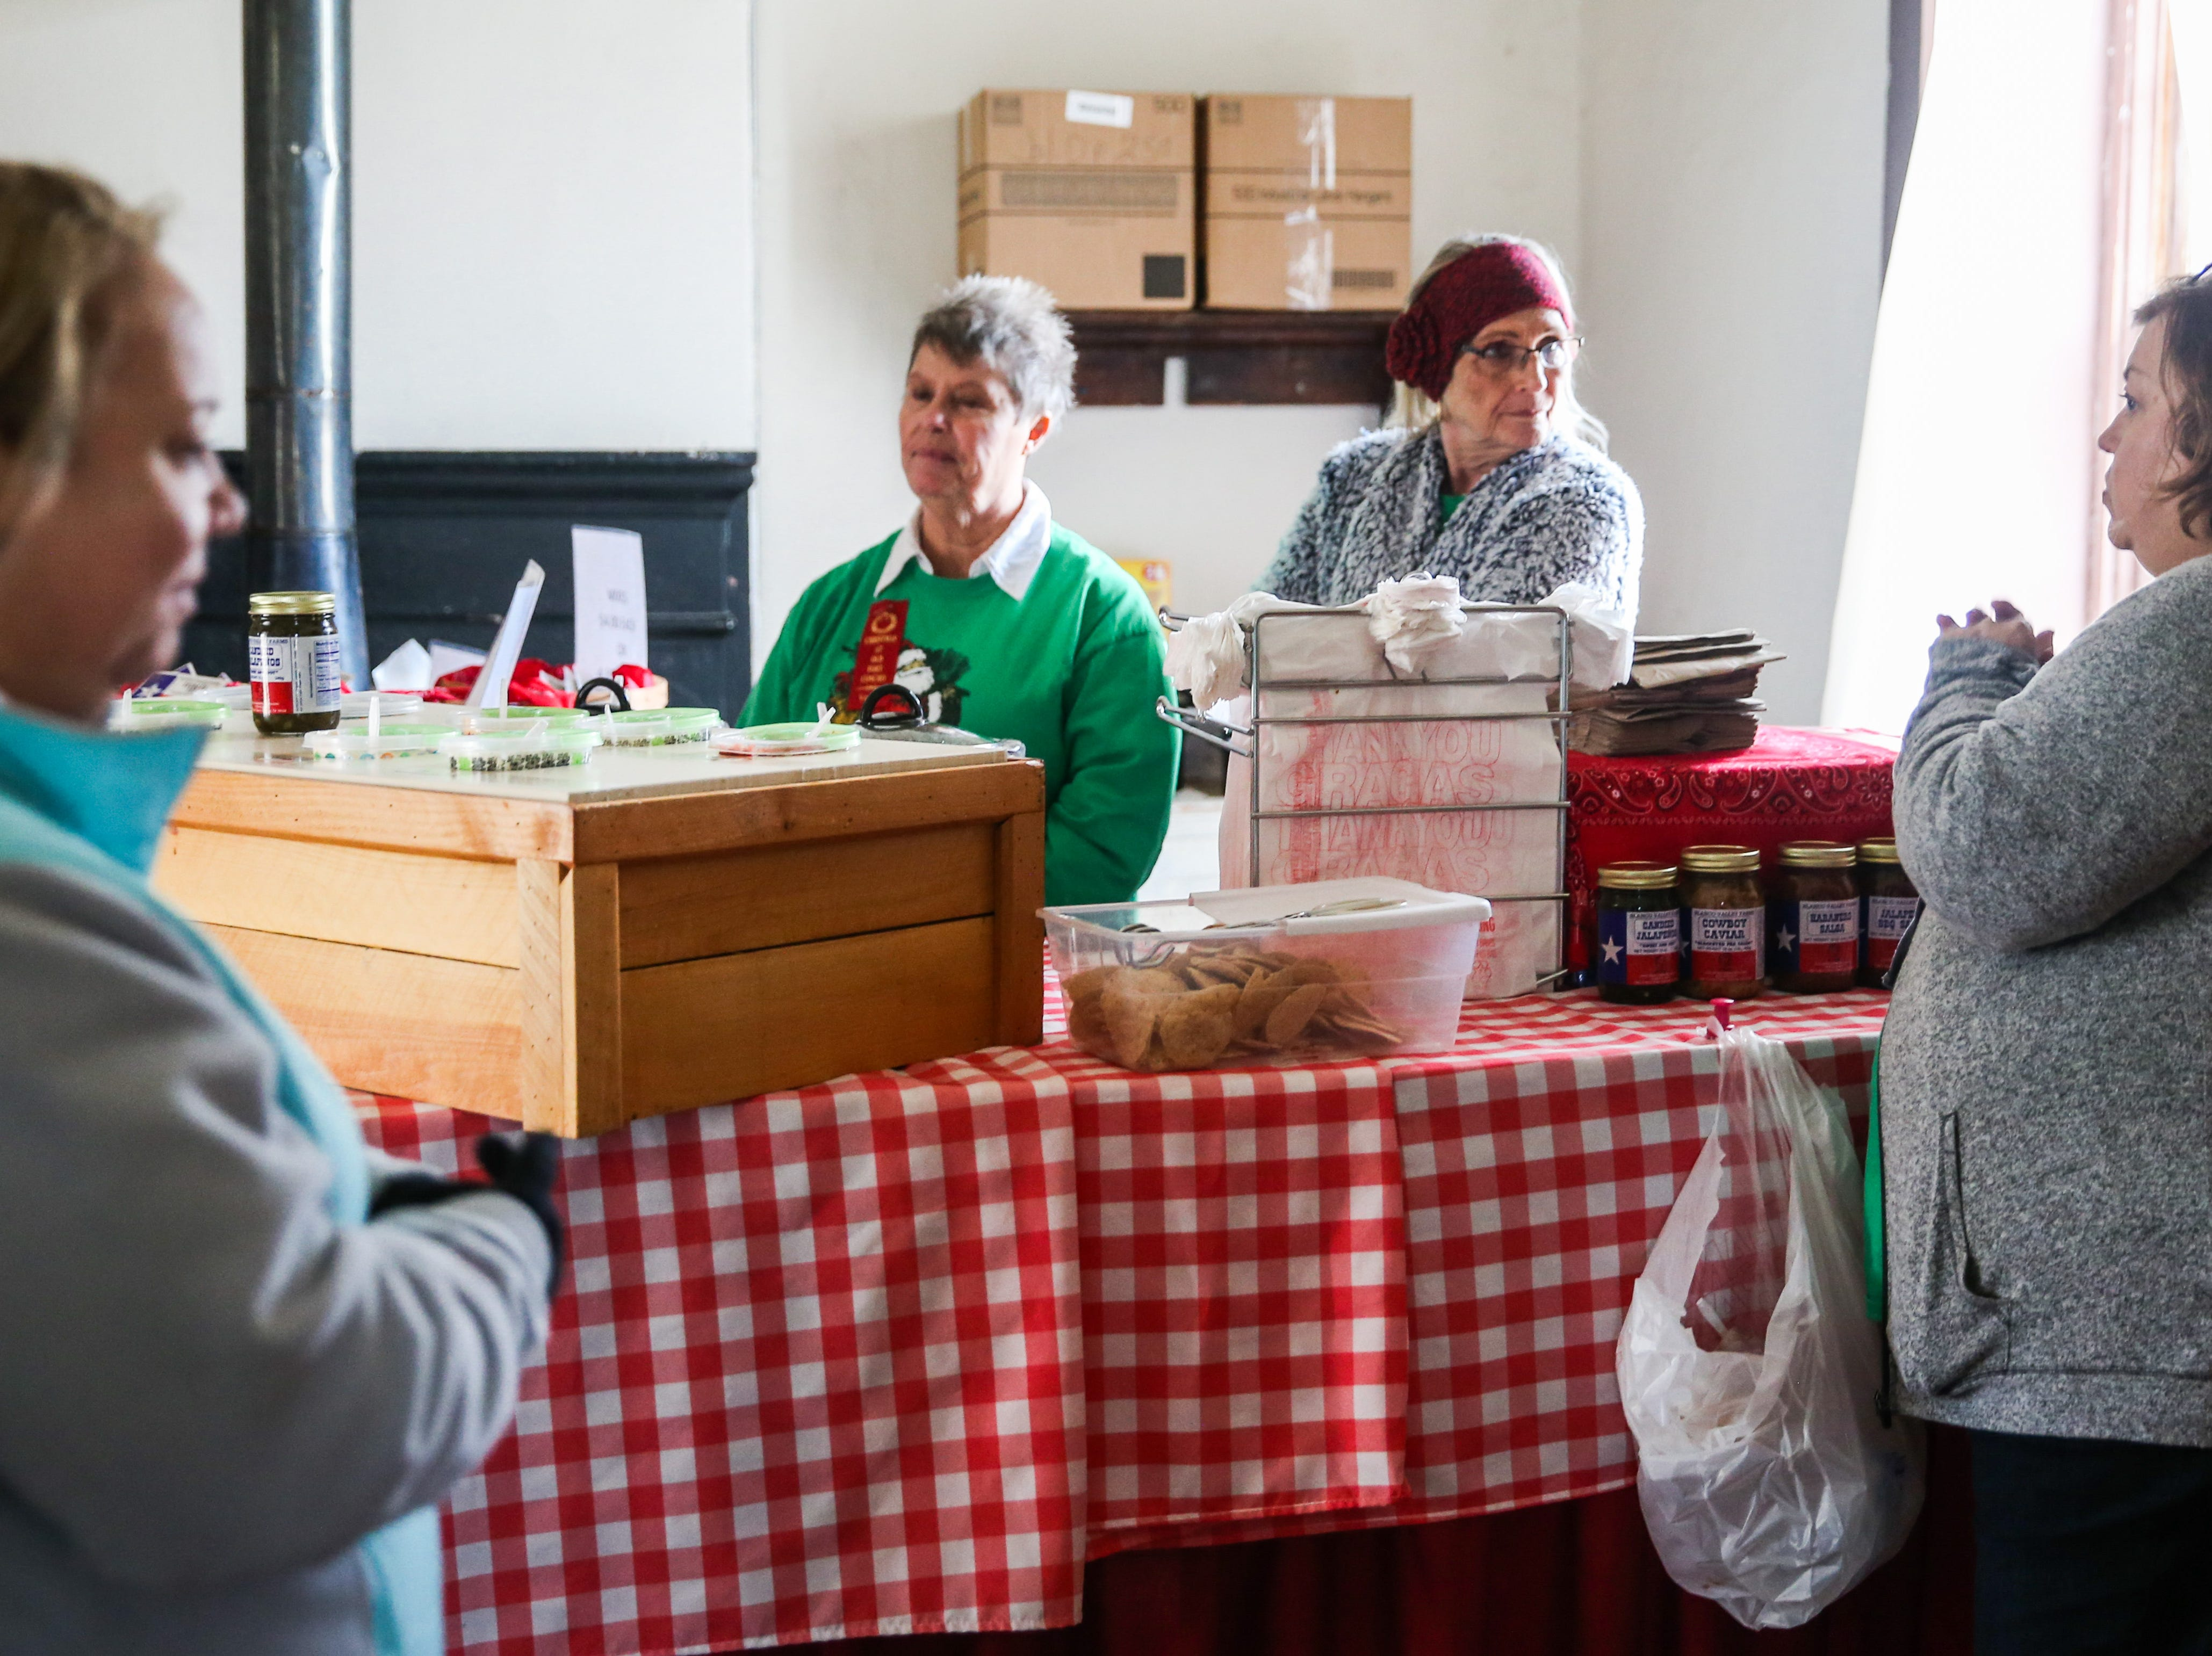 Shoppers chat with merchants in a fort building Friday, Dec. 7, 2018, during Christmas at Old Fort Concho.